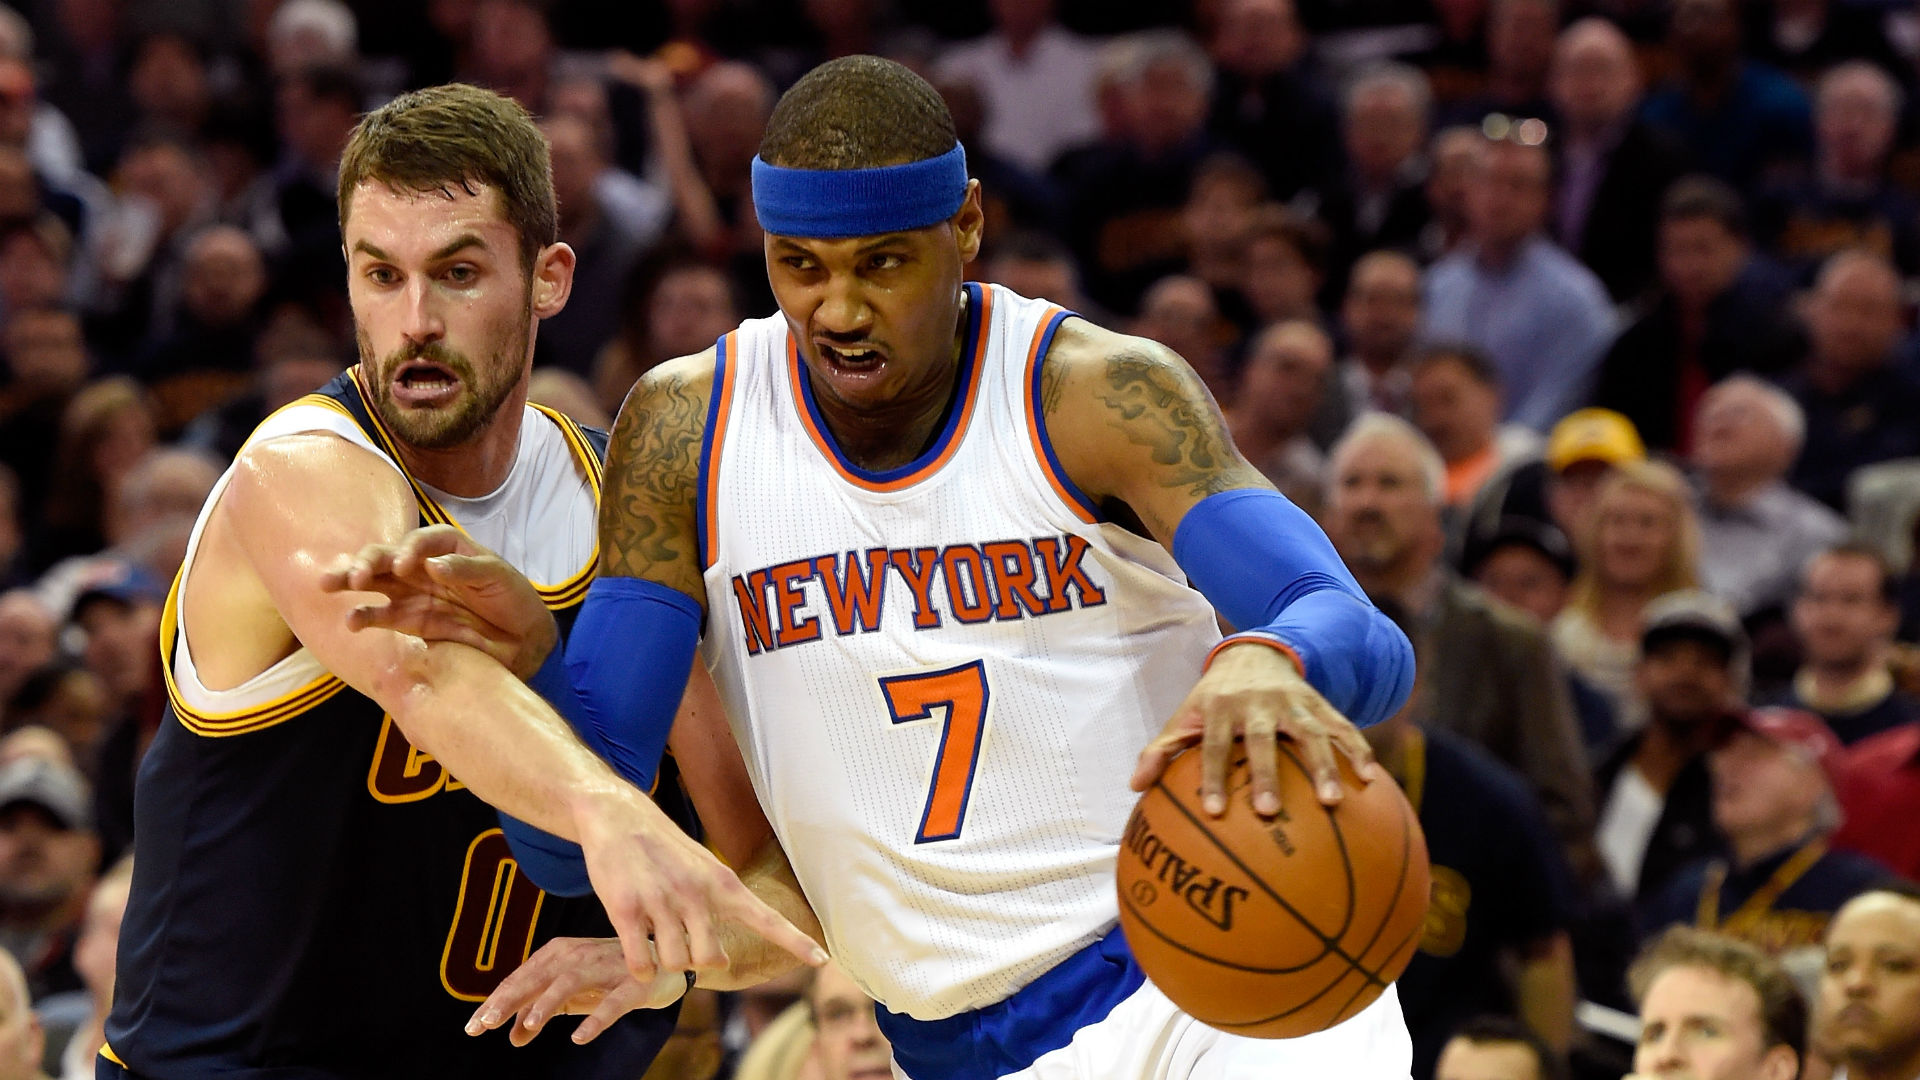 Carmelo Anthony Trade Rumors: New York Knicks Decision Time As Fans Boo